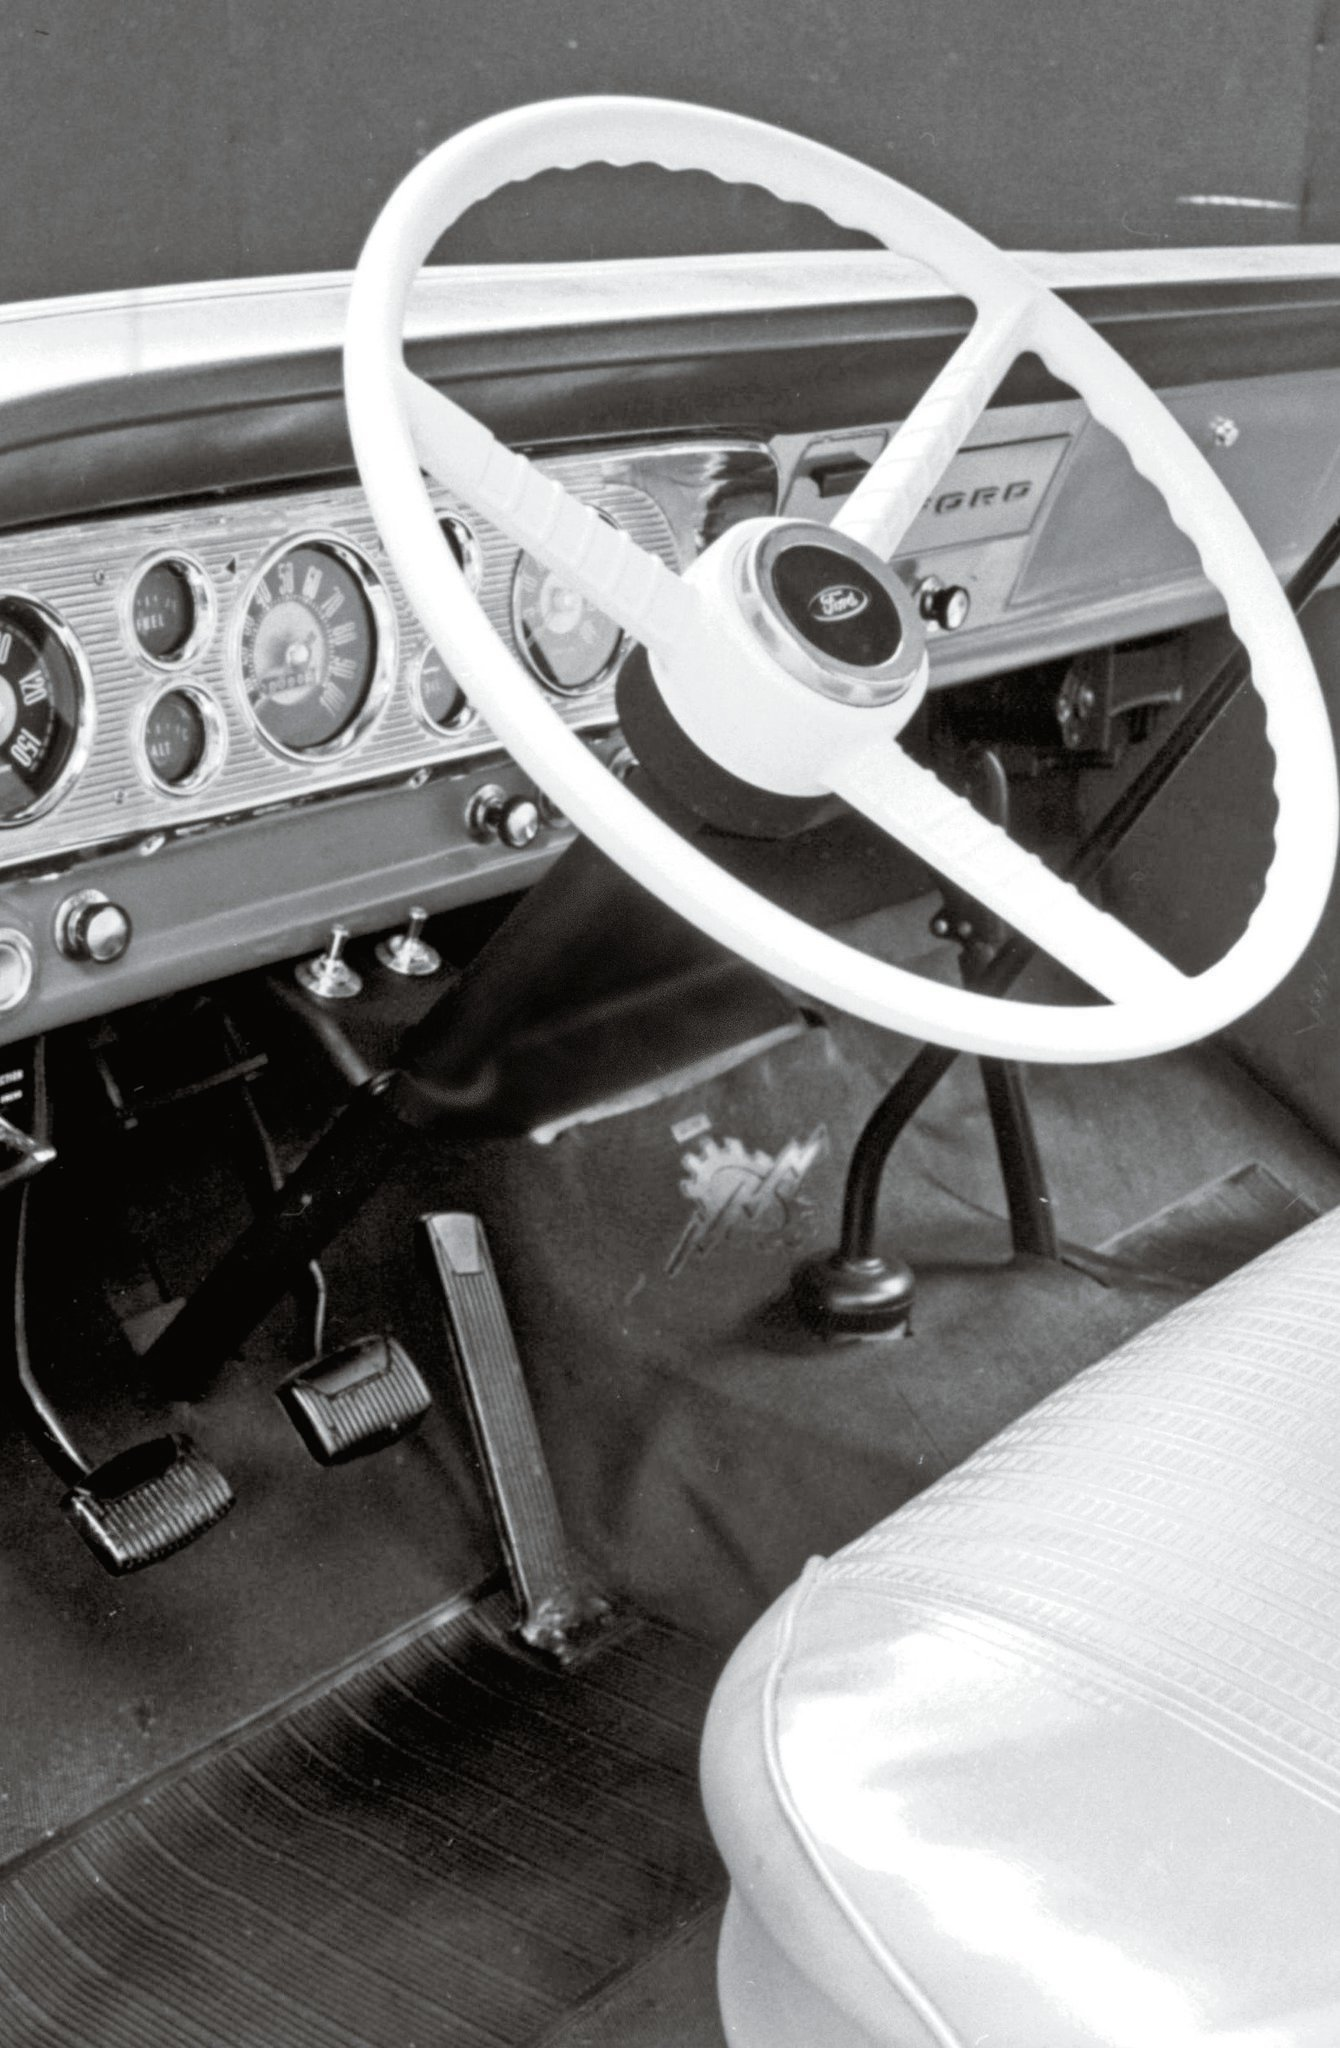 The late '60s and early '70s interiors were simple and spartan. The early 4WD F-Series trucks would not see an automatic transmission until the C6 three-speed was offered in '73 models.